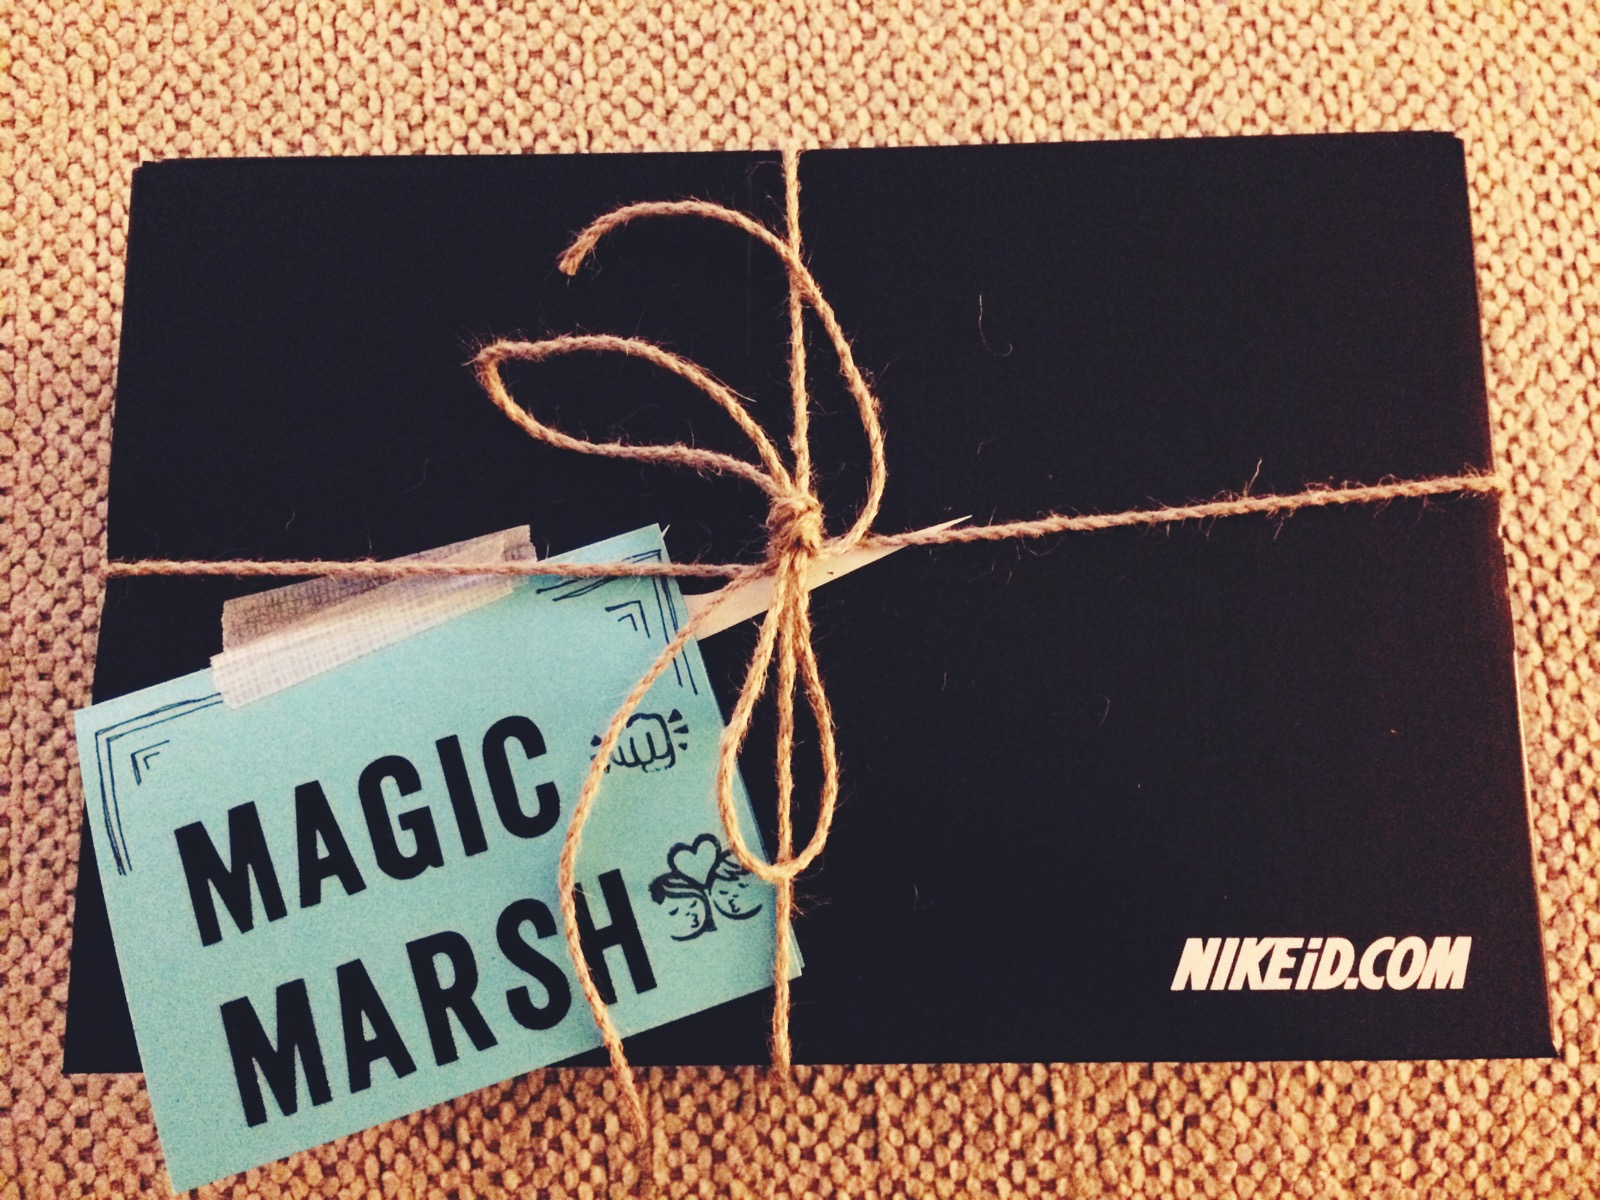 Squarespace gifted us customized Nikes for Christmas, they arrived this month, and I gave mine to Marshal.